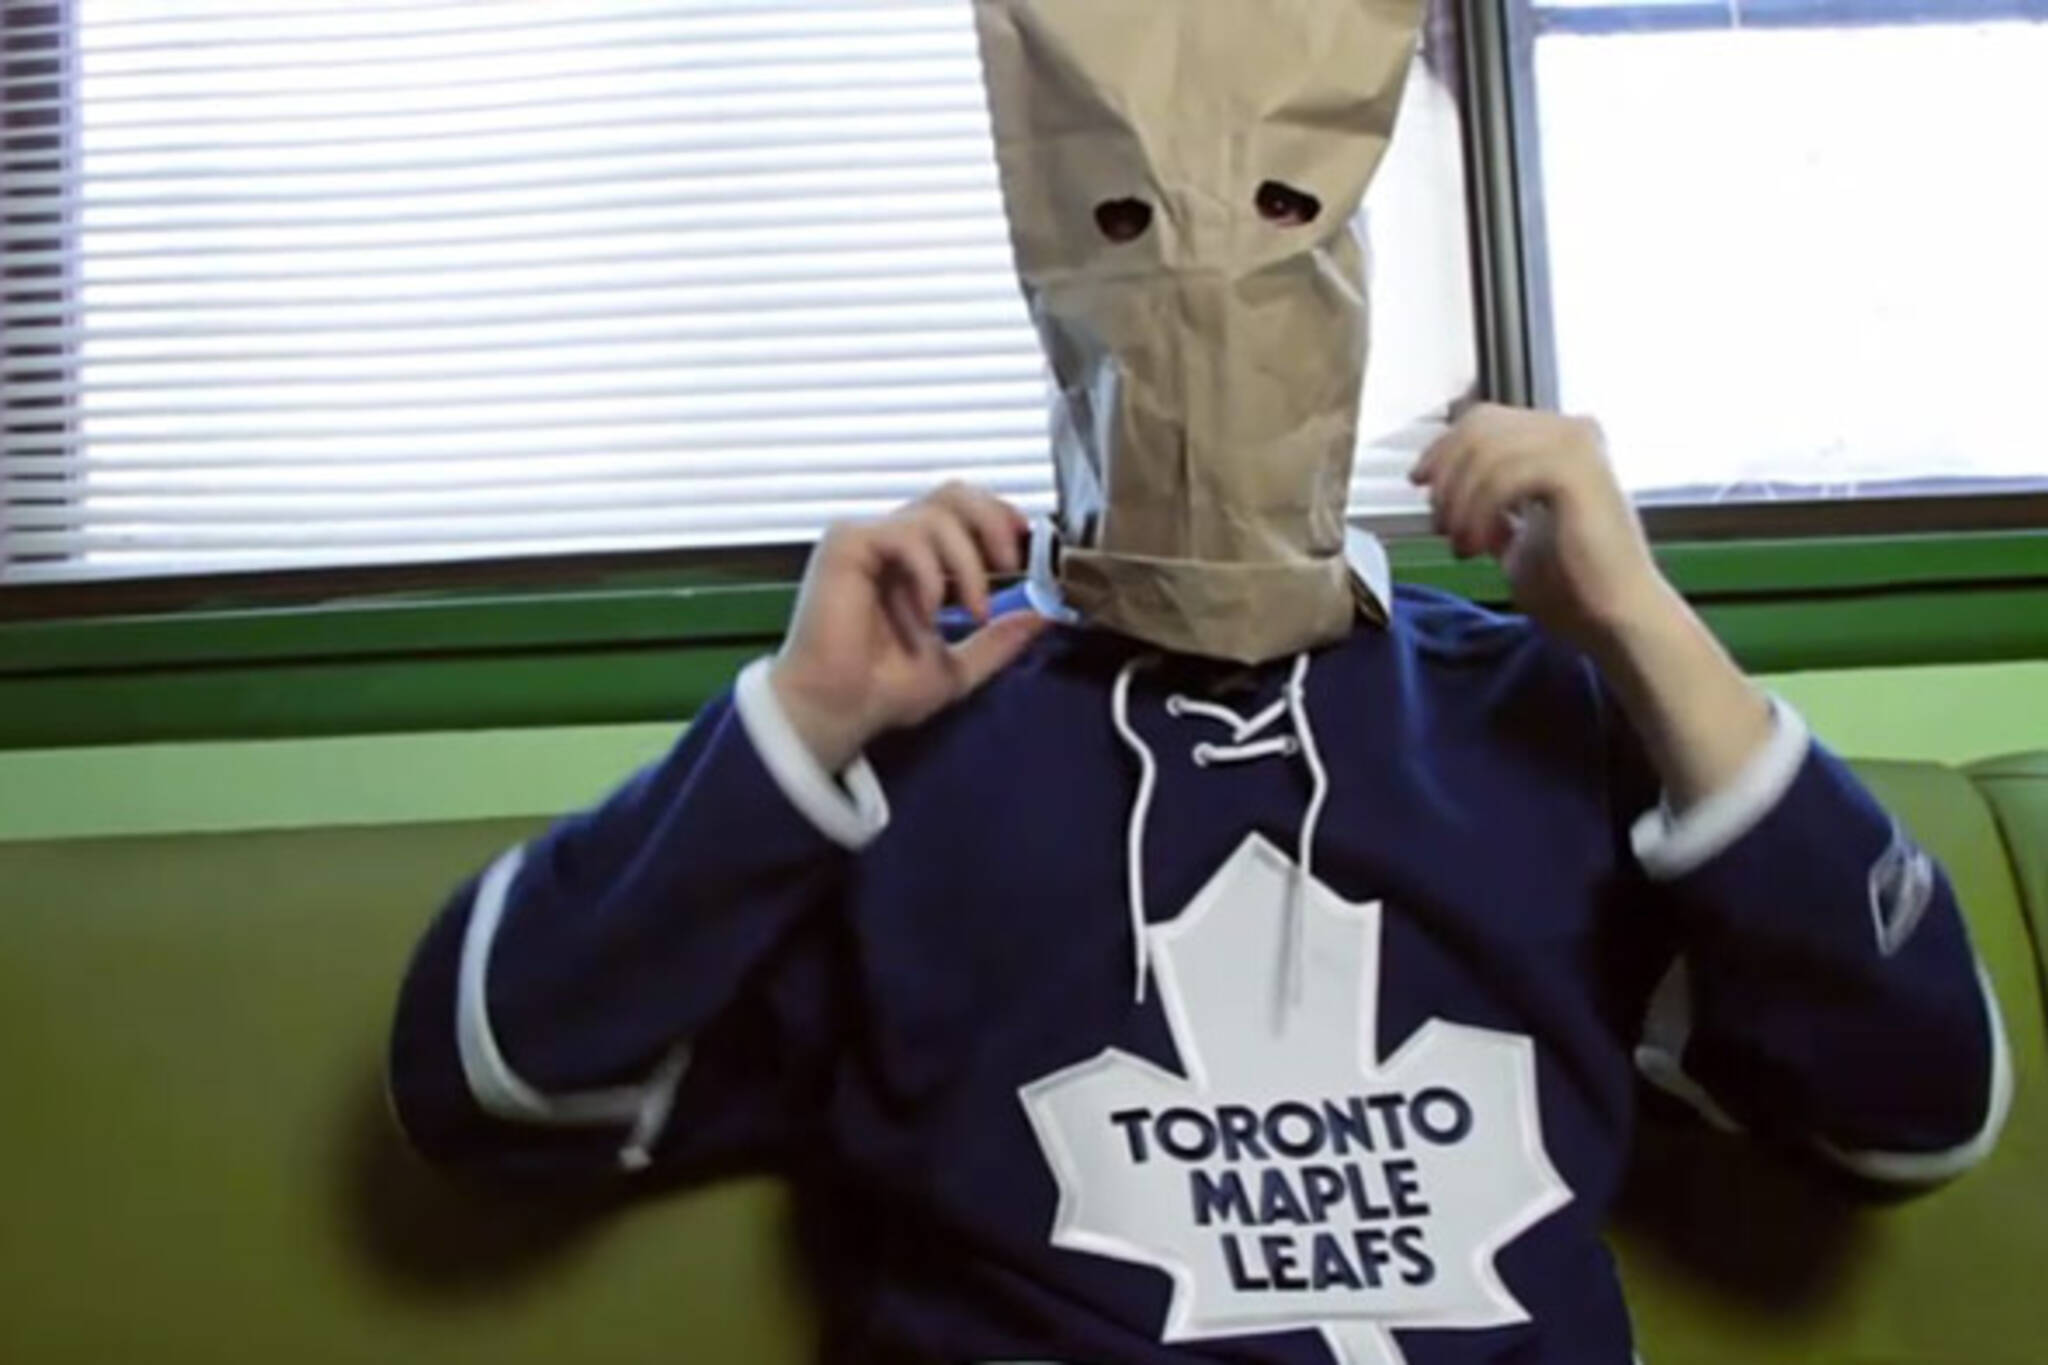 Leafs Habs YouTube Video